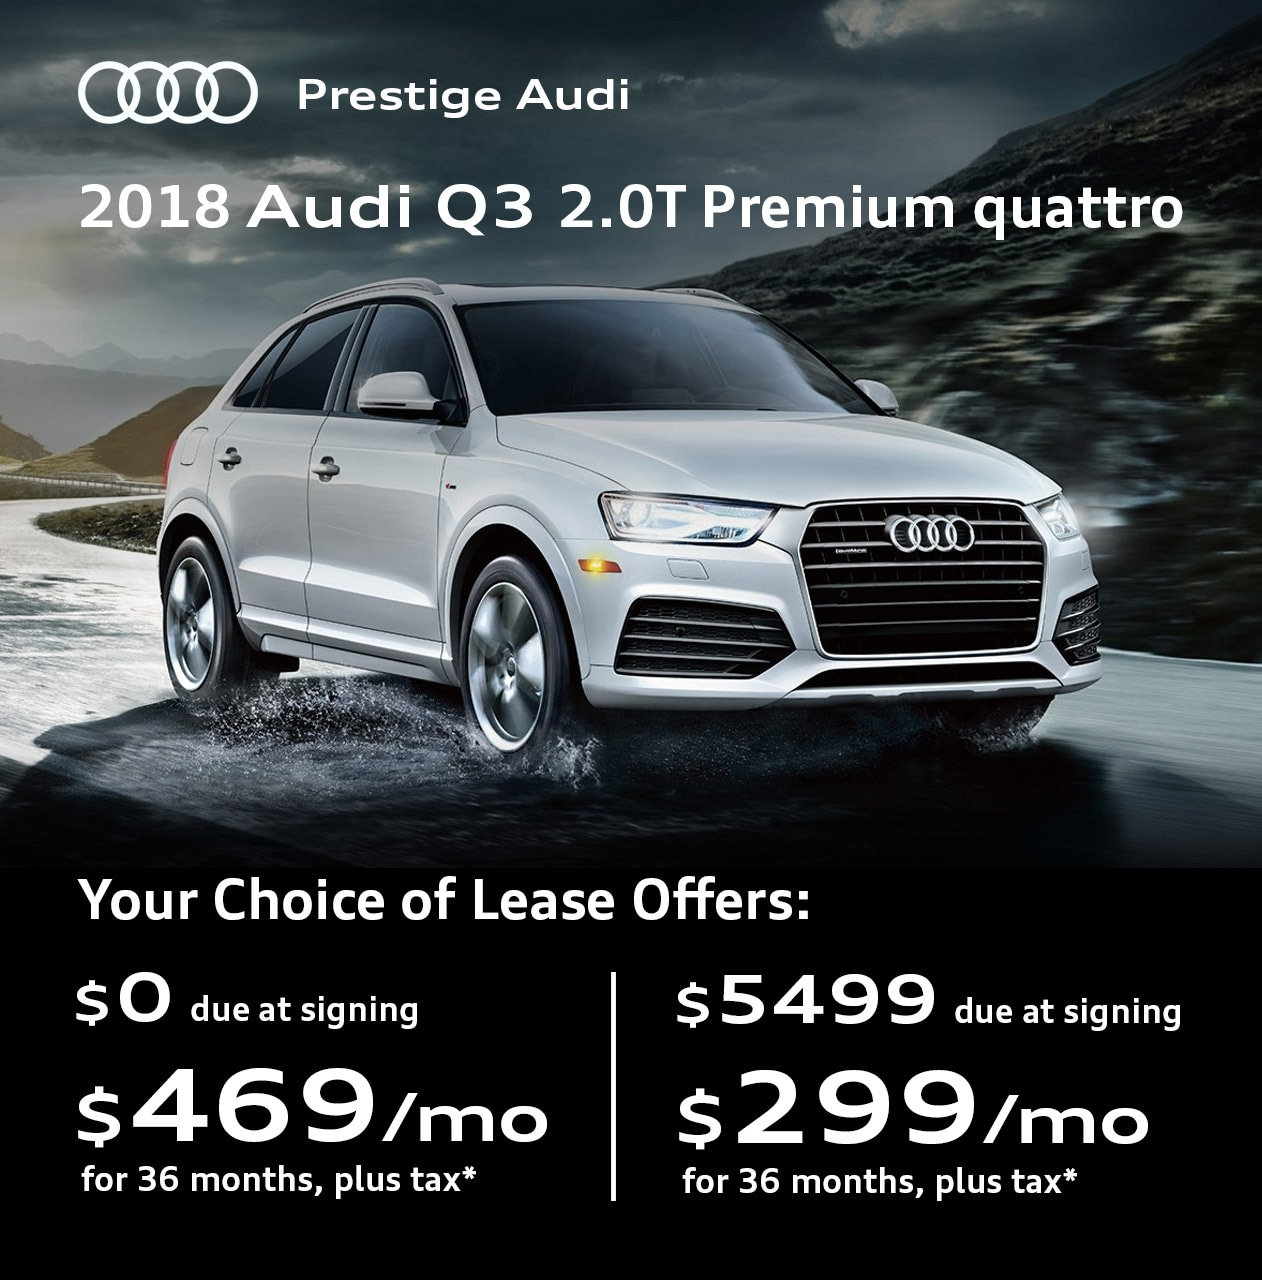 Audi Specials Lease Deals Offers At Prestige Audi Near Denver Co - Audi offers